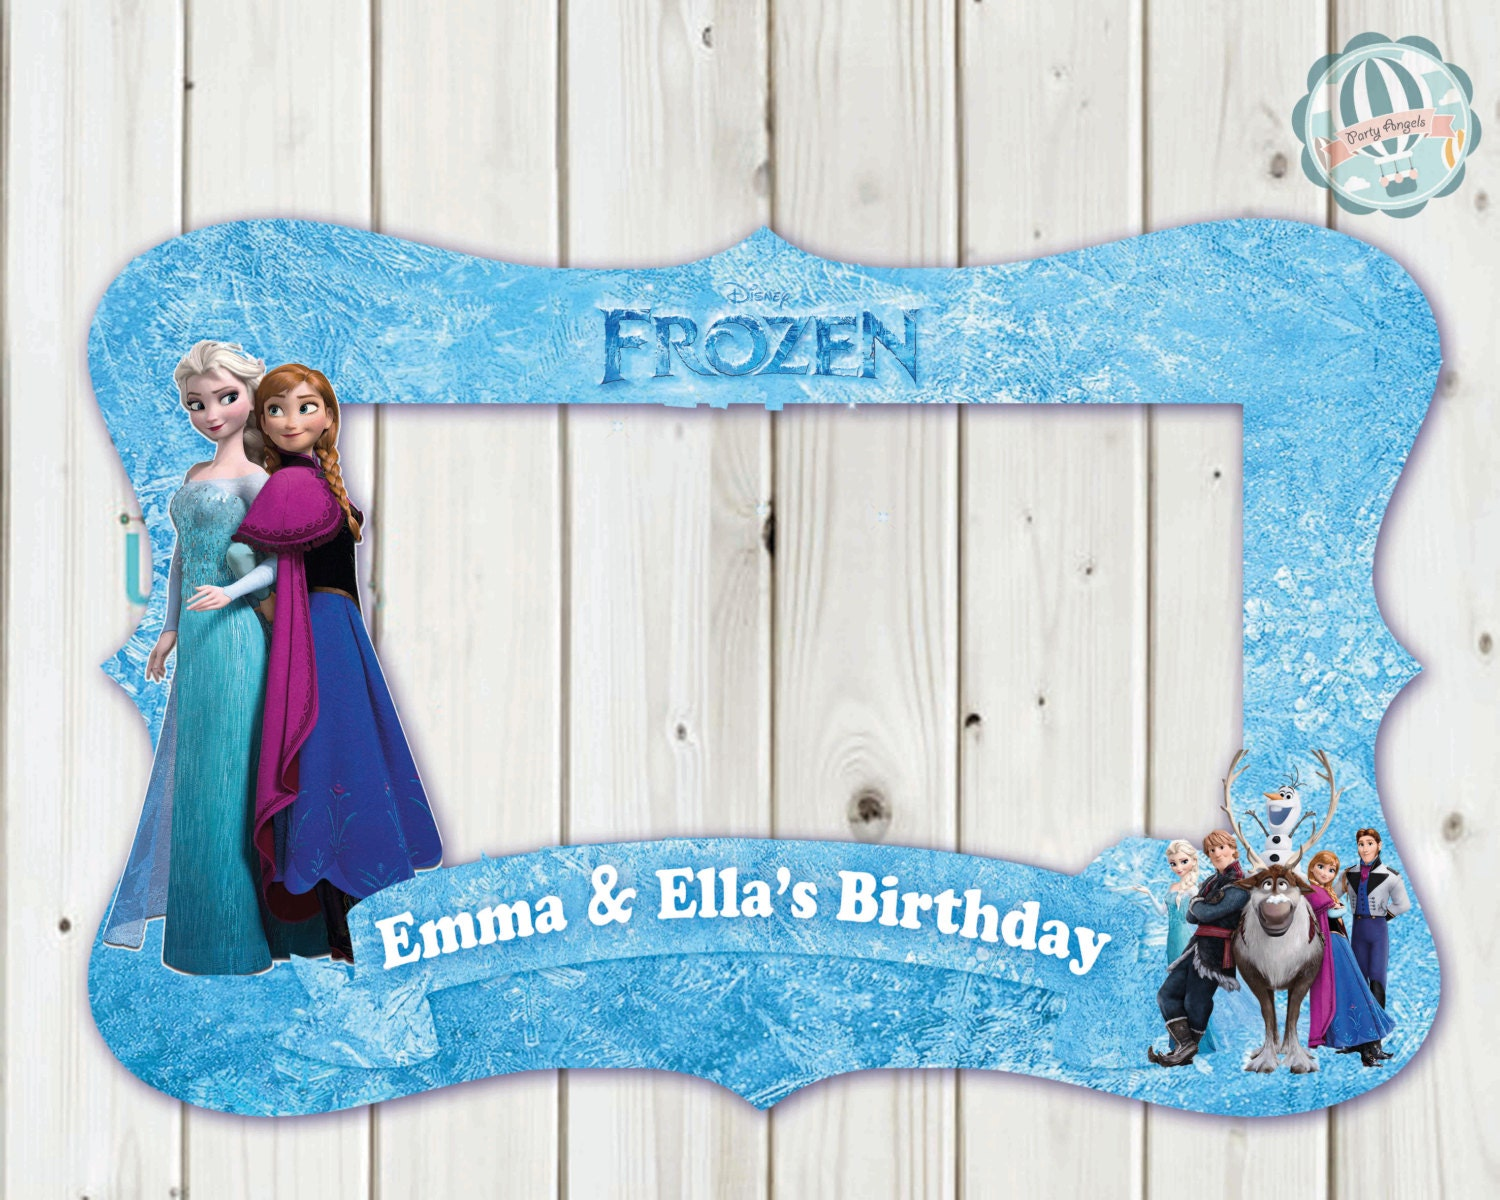 Frozen Frames Photography - Page 3 - Frame Design & Reviews ✓